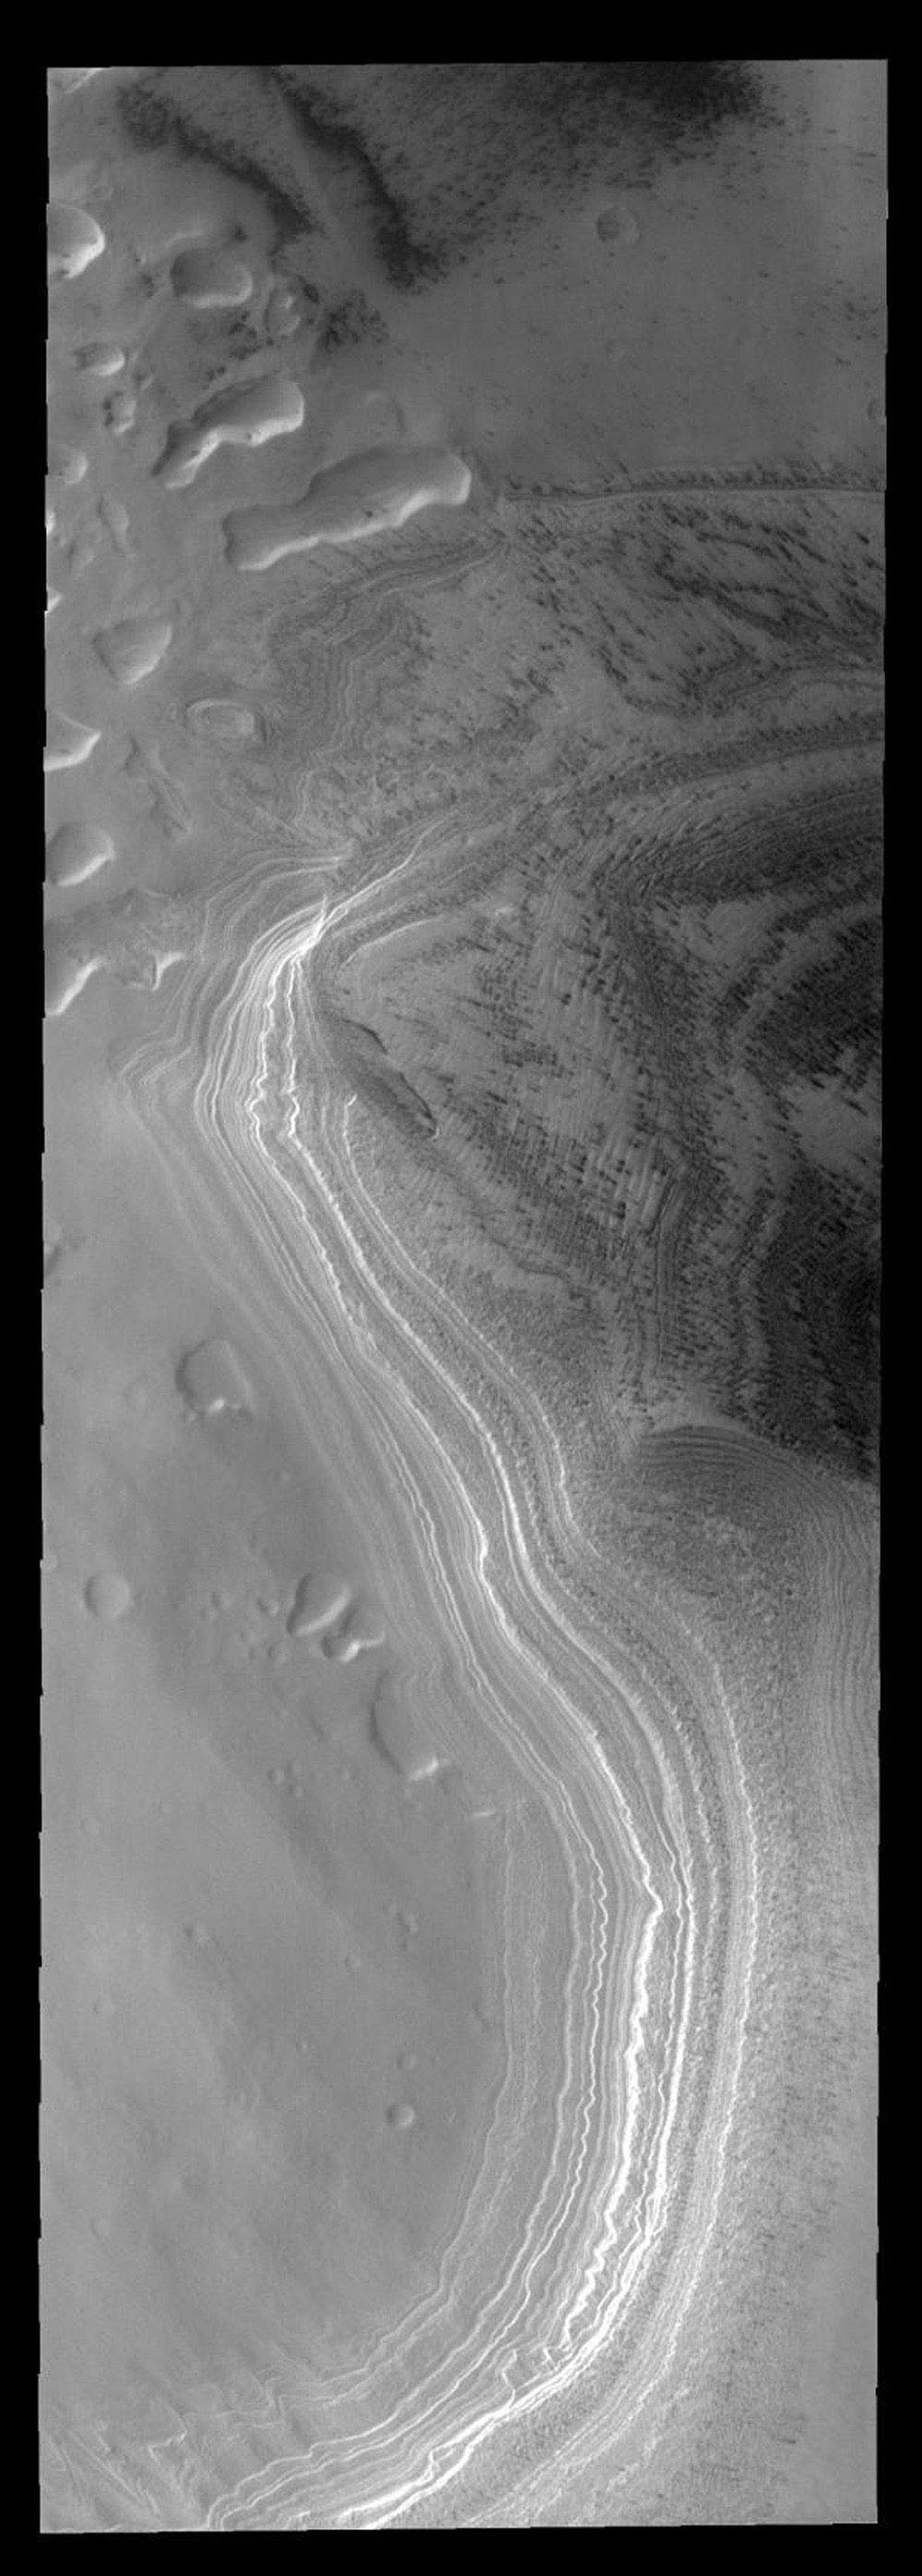 This image from NASA's Mars Odyssey spacecraft shows layering of Mars' south polar cap.